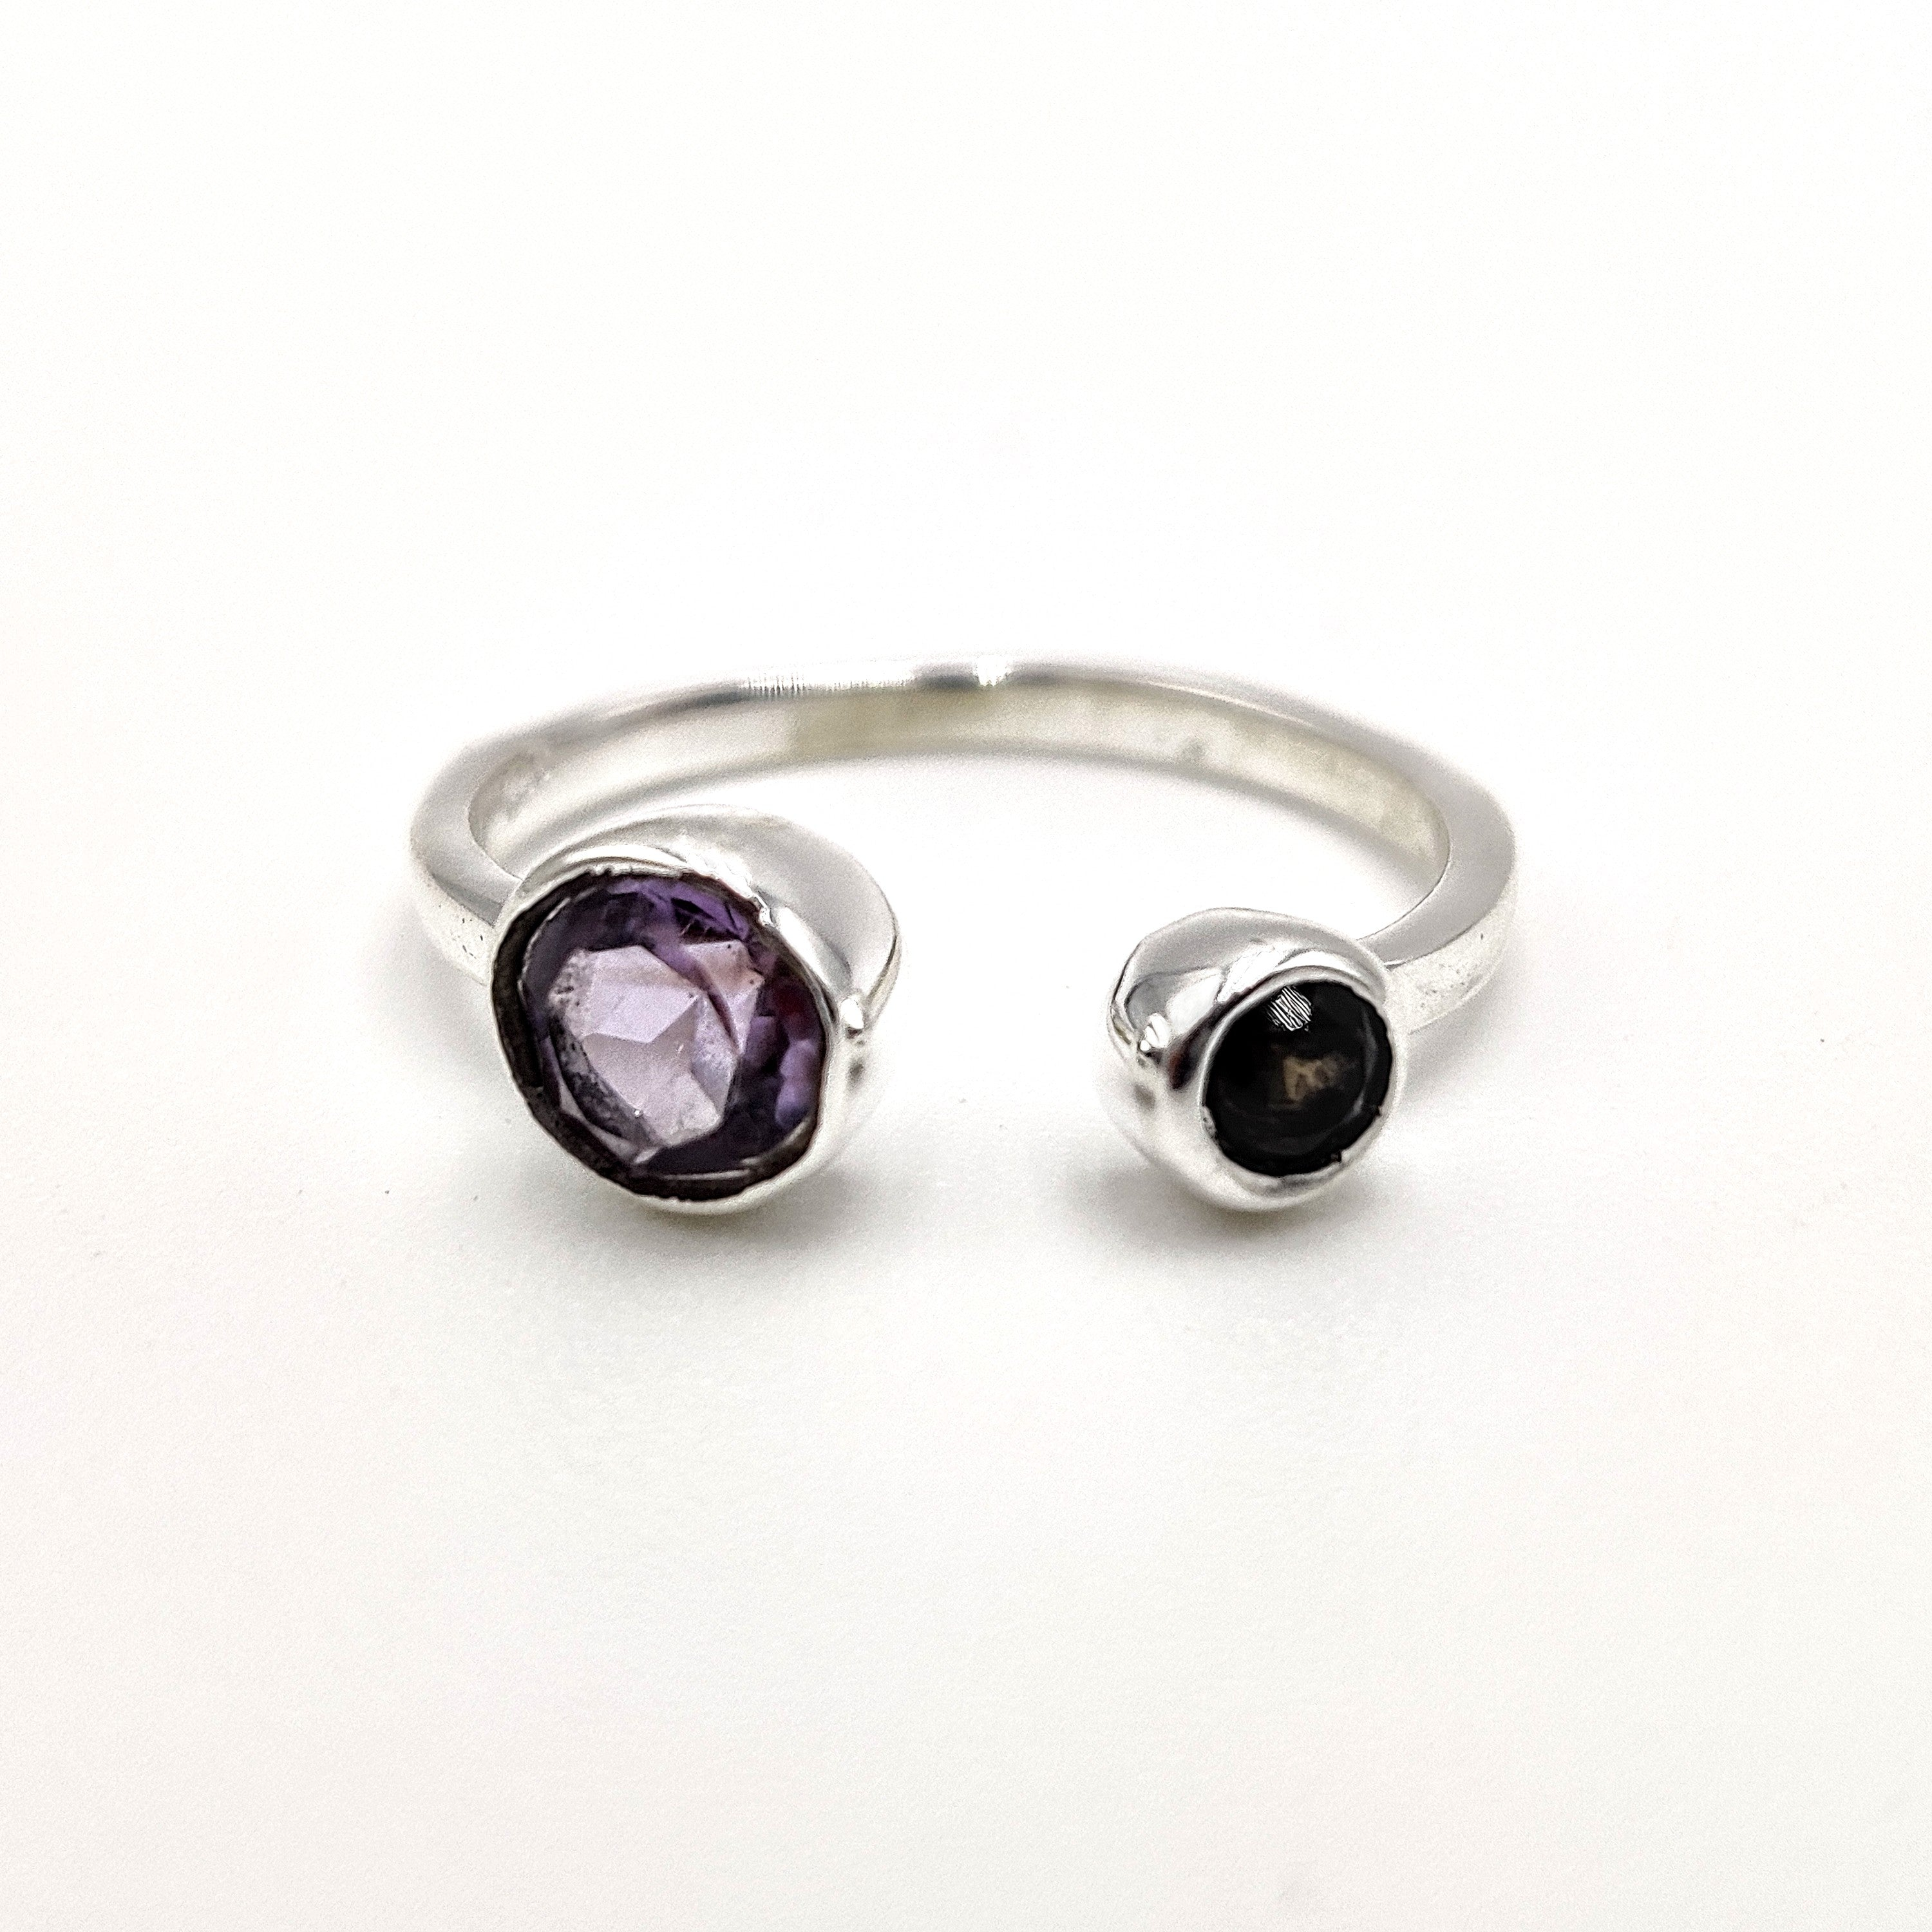 Ring - Silver sz5 - Amethyst Square Faceted - CHR057-AM-SQ5